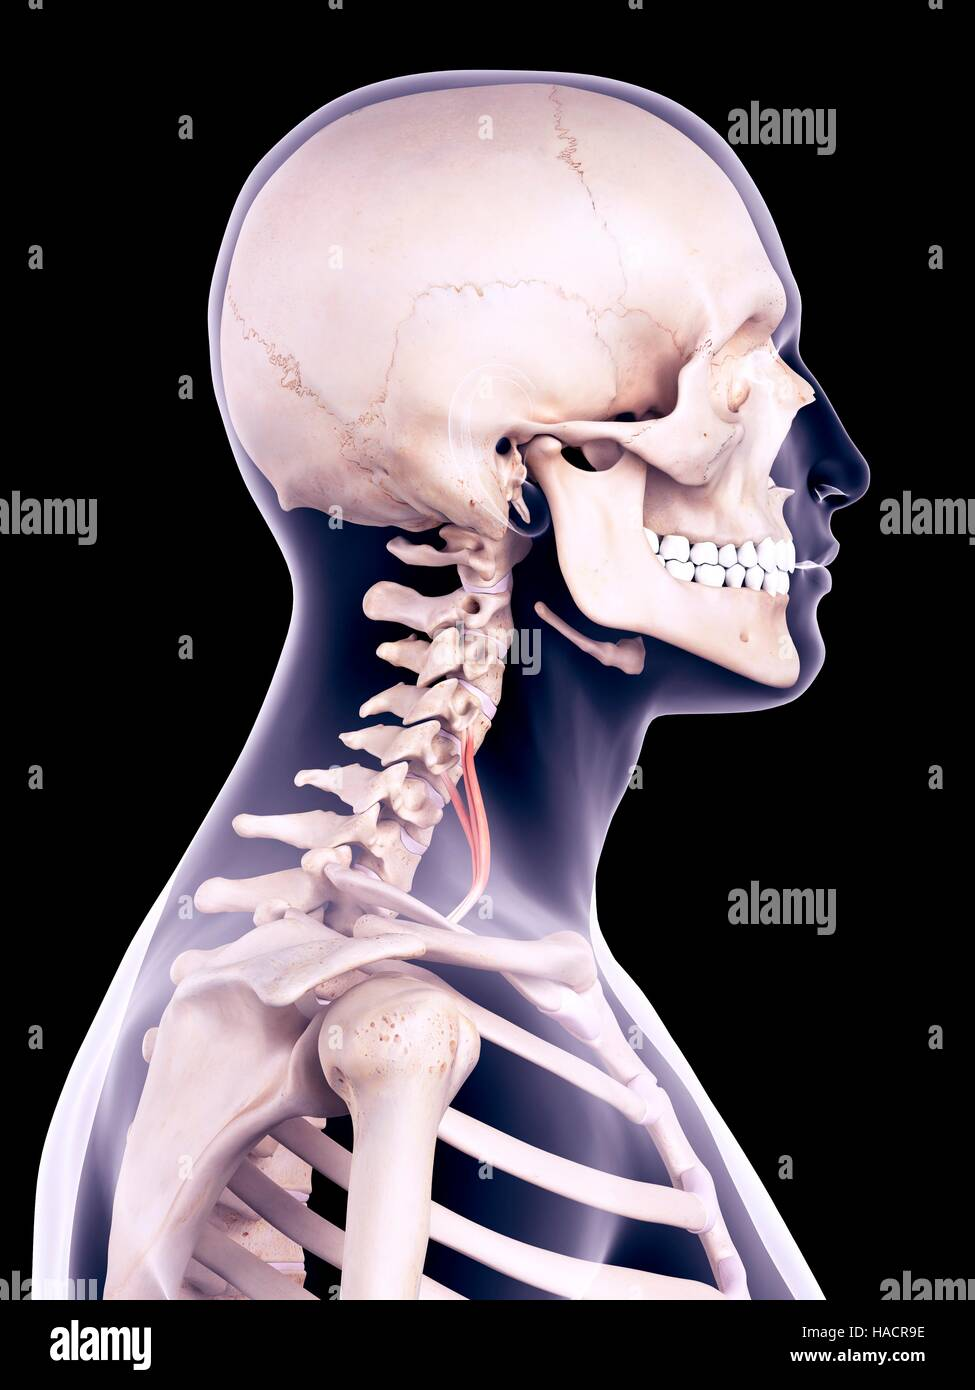 Illustration of the scalene anterior muscle. - Stock Image